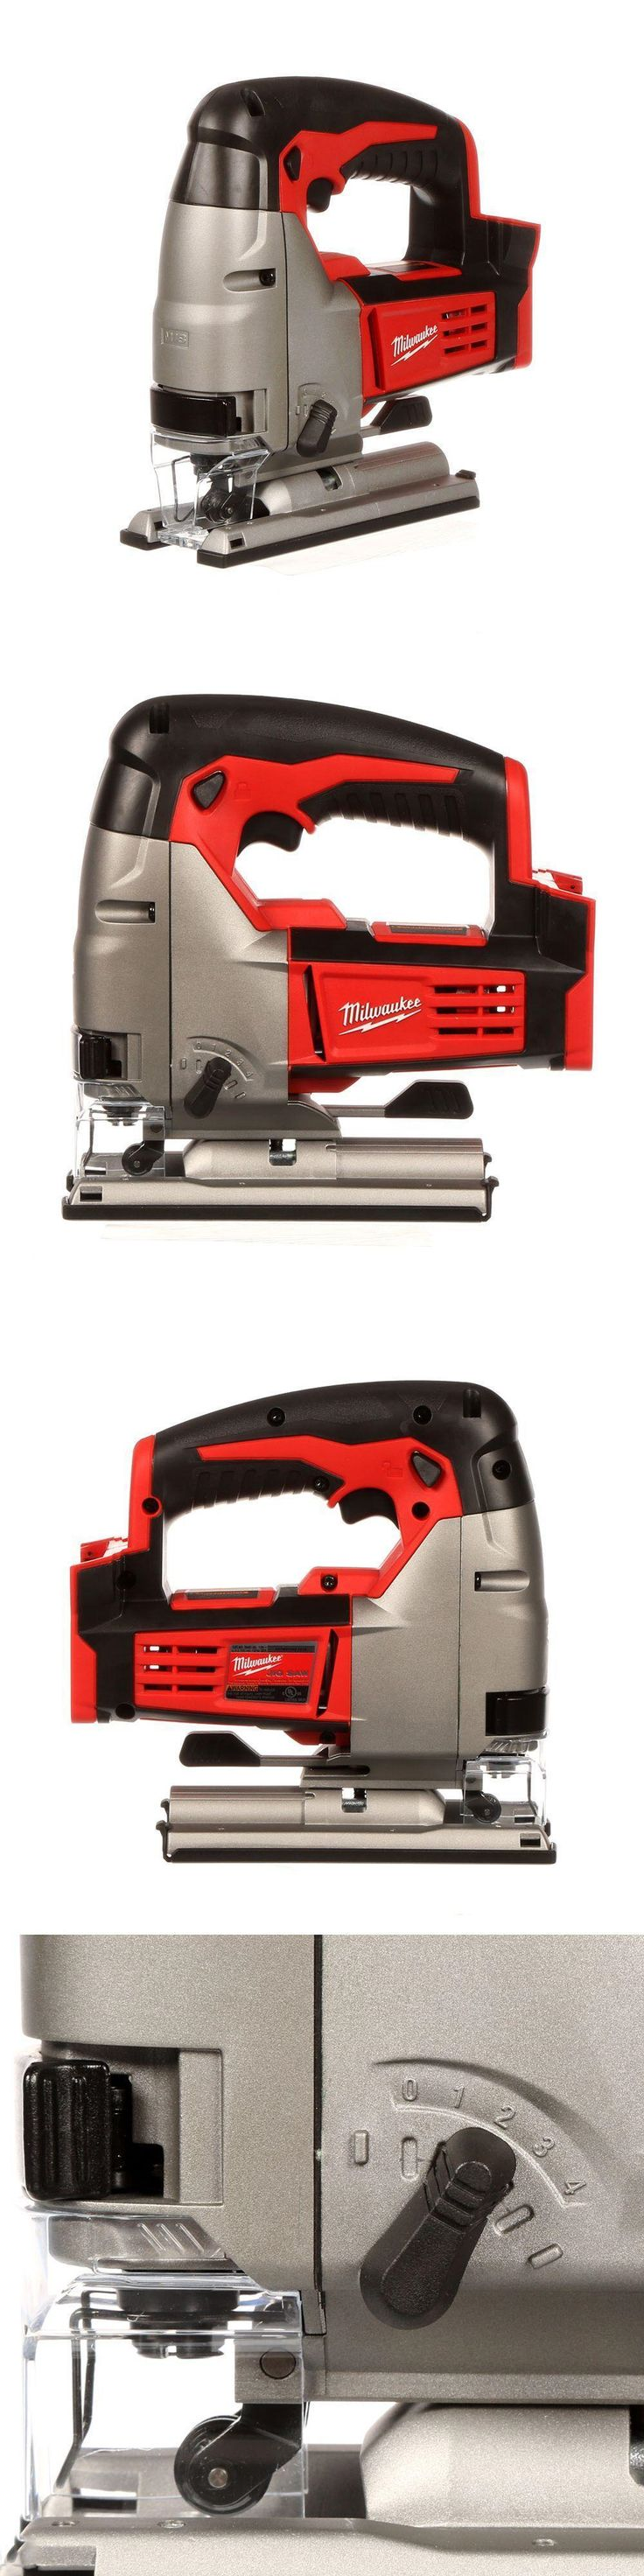 Jig and Scroll Saws 122834: Milwaukee M18 18-Volt Lithium-Ion Cordless Jig Saw (Tool-Only) 2645-20 New -> BUY IT NOW ONLY: $105 on eBay!